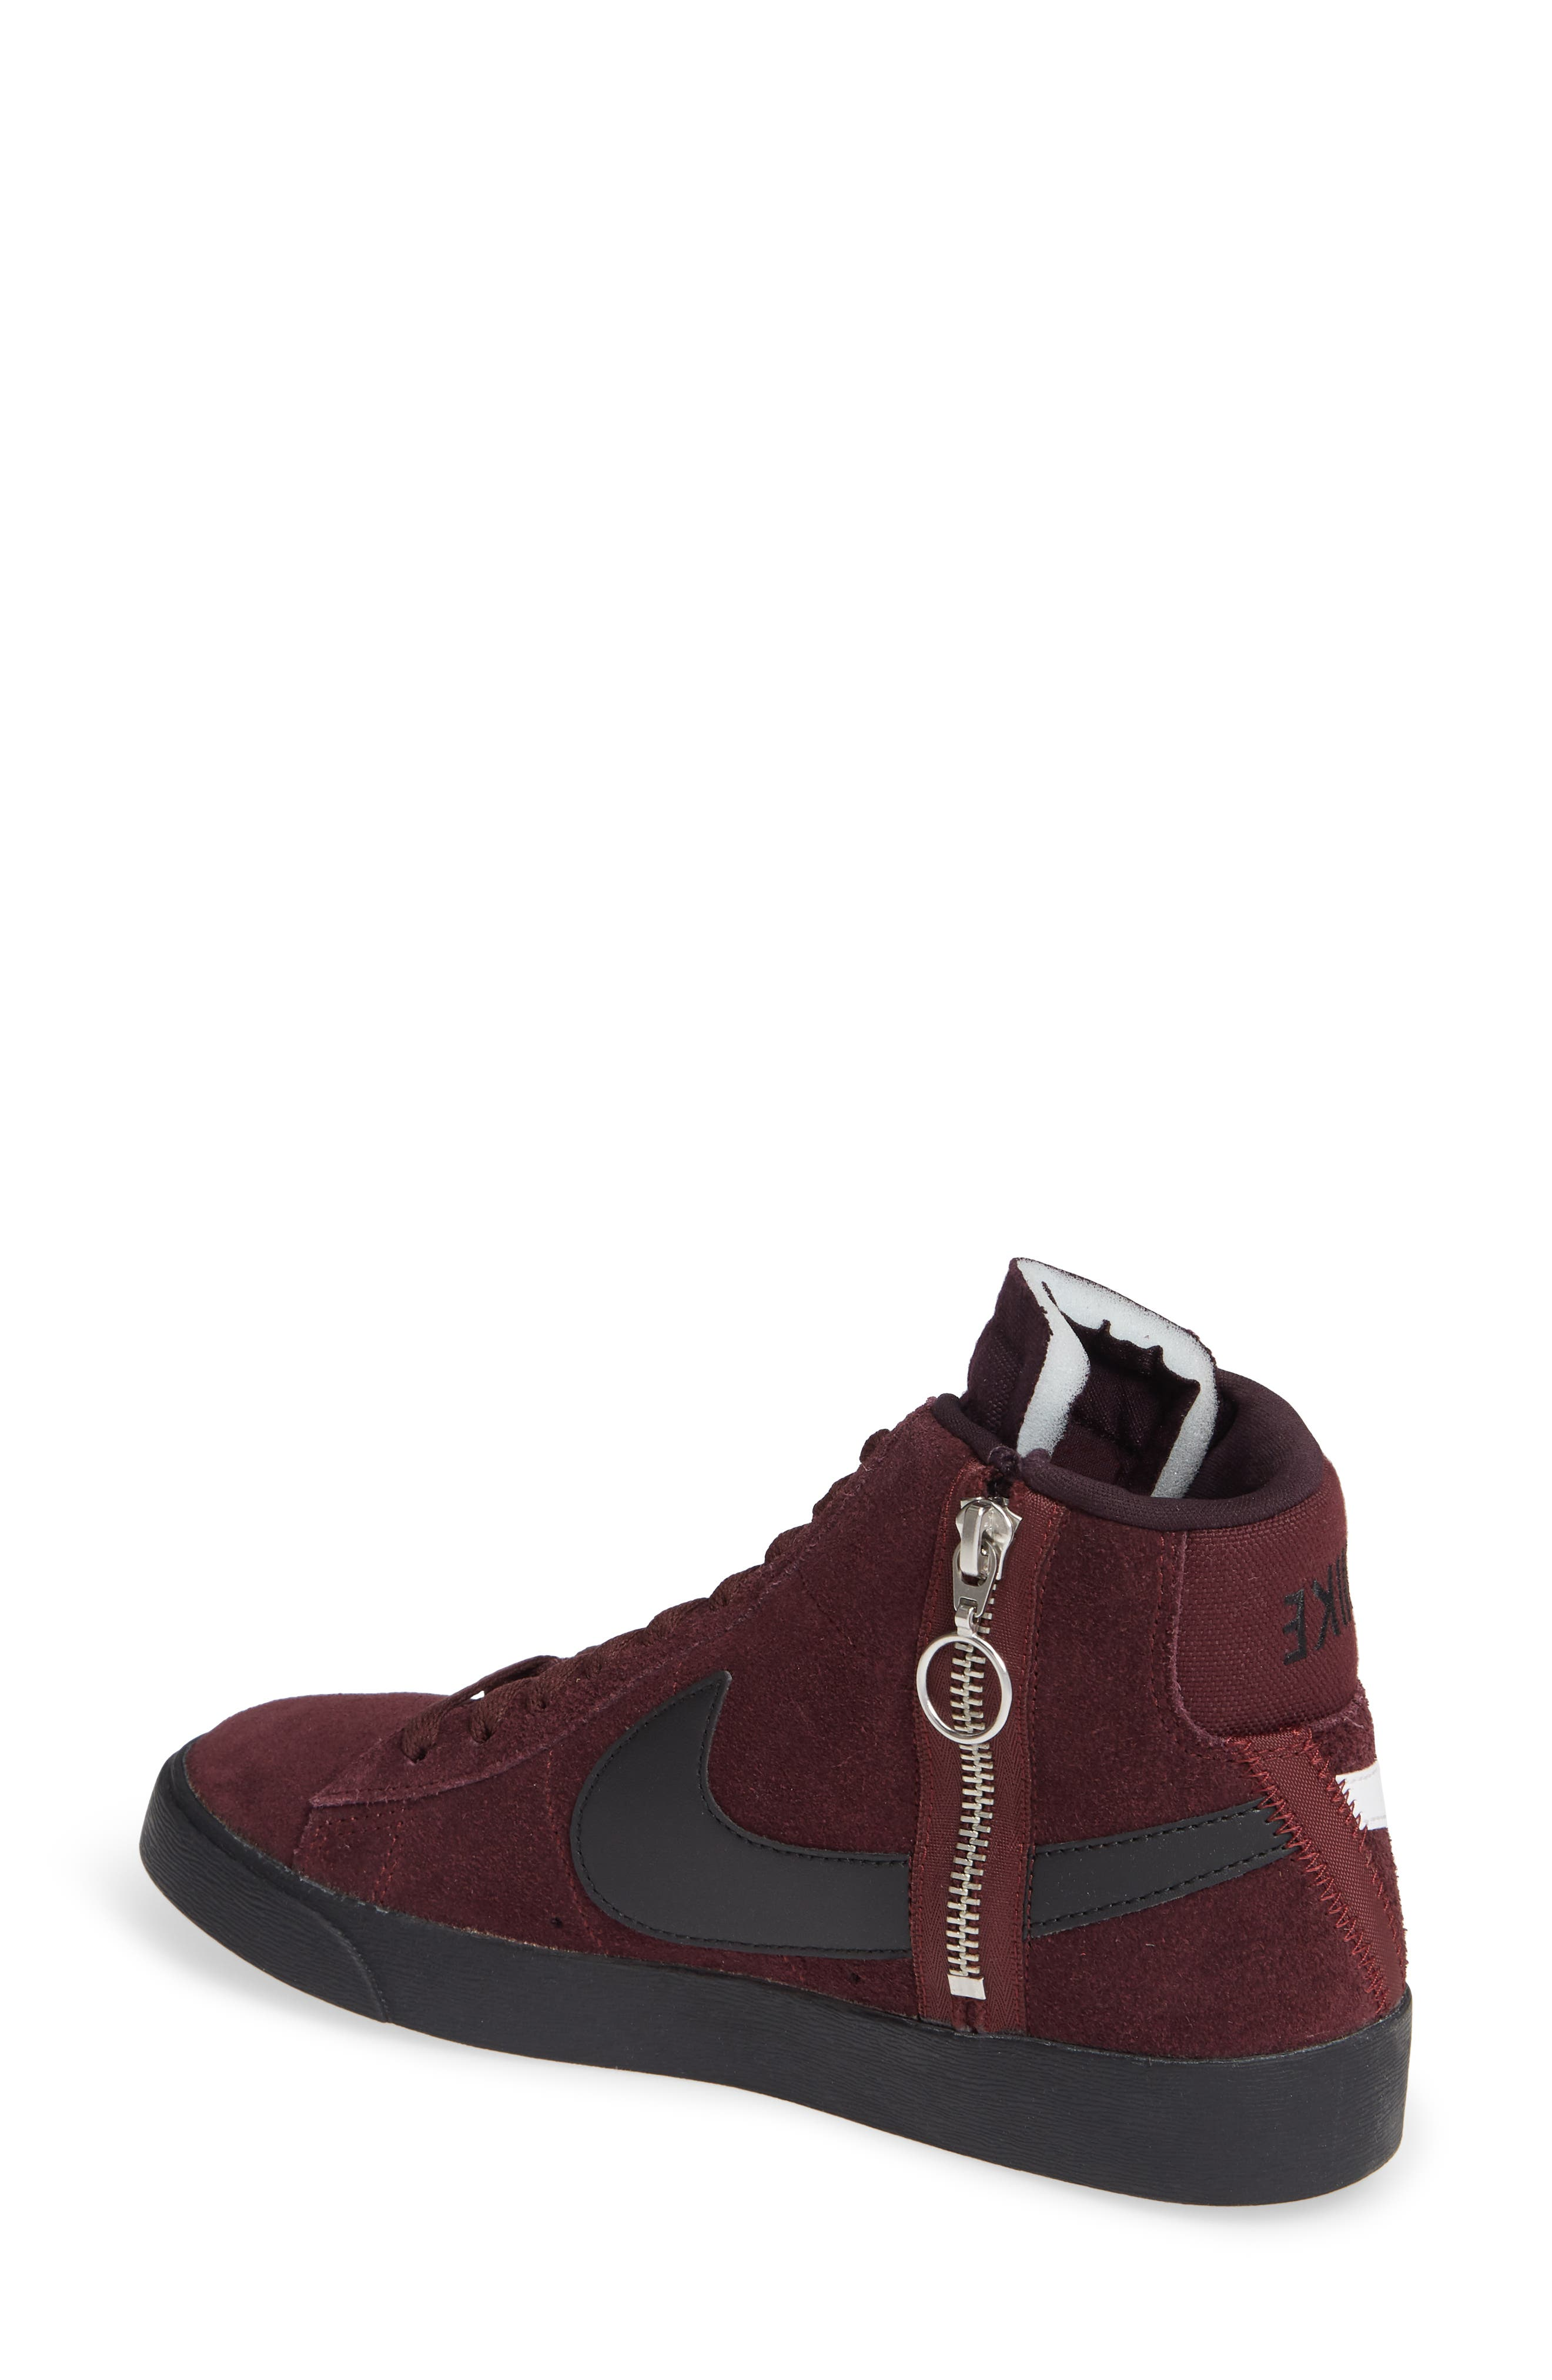 Blazer Mid Rebel Sneaker,                             Alternate thumbnail 2, color,                             BURGUNDY CRUSH/ ASH- WHITE